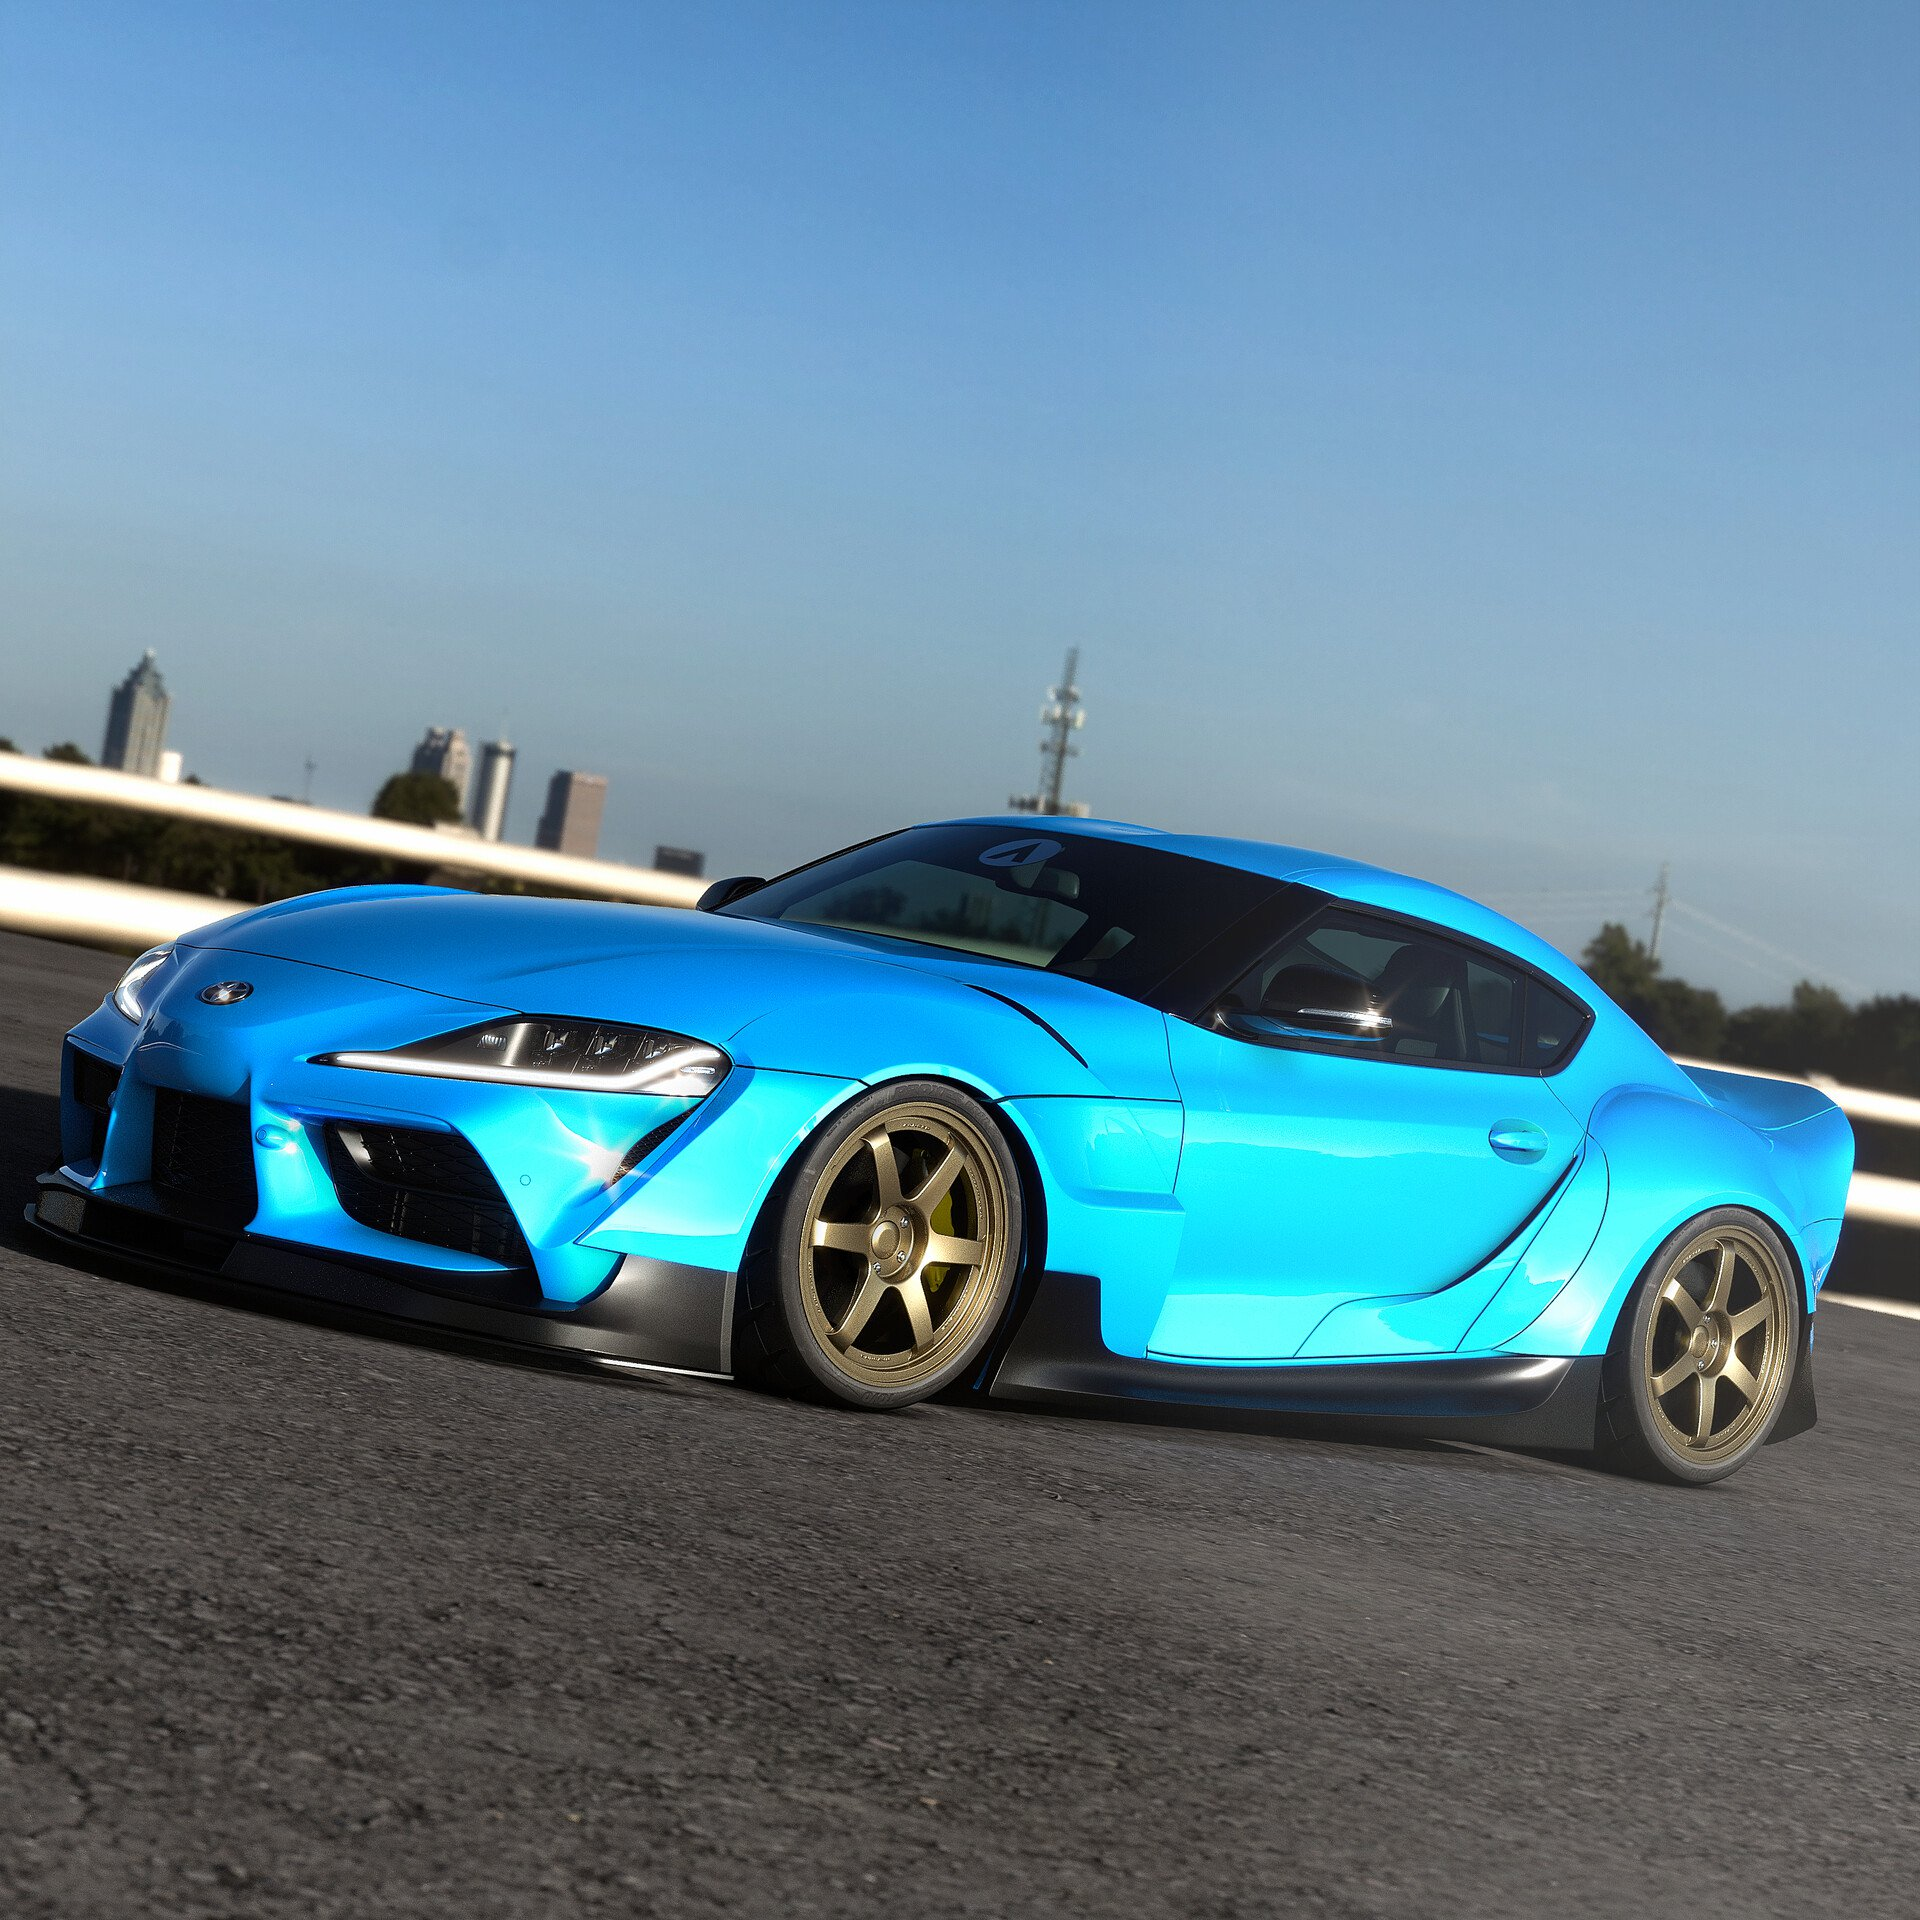 Toyota-Supra-Widebody-kit-renderings-2